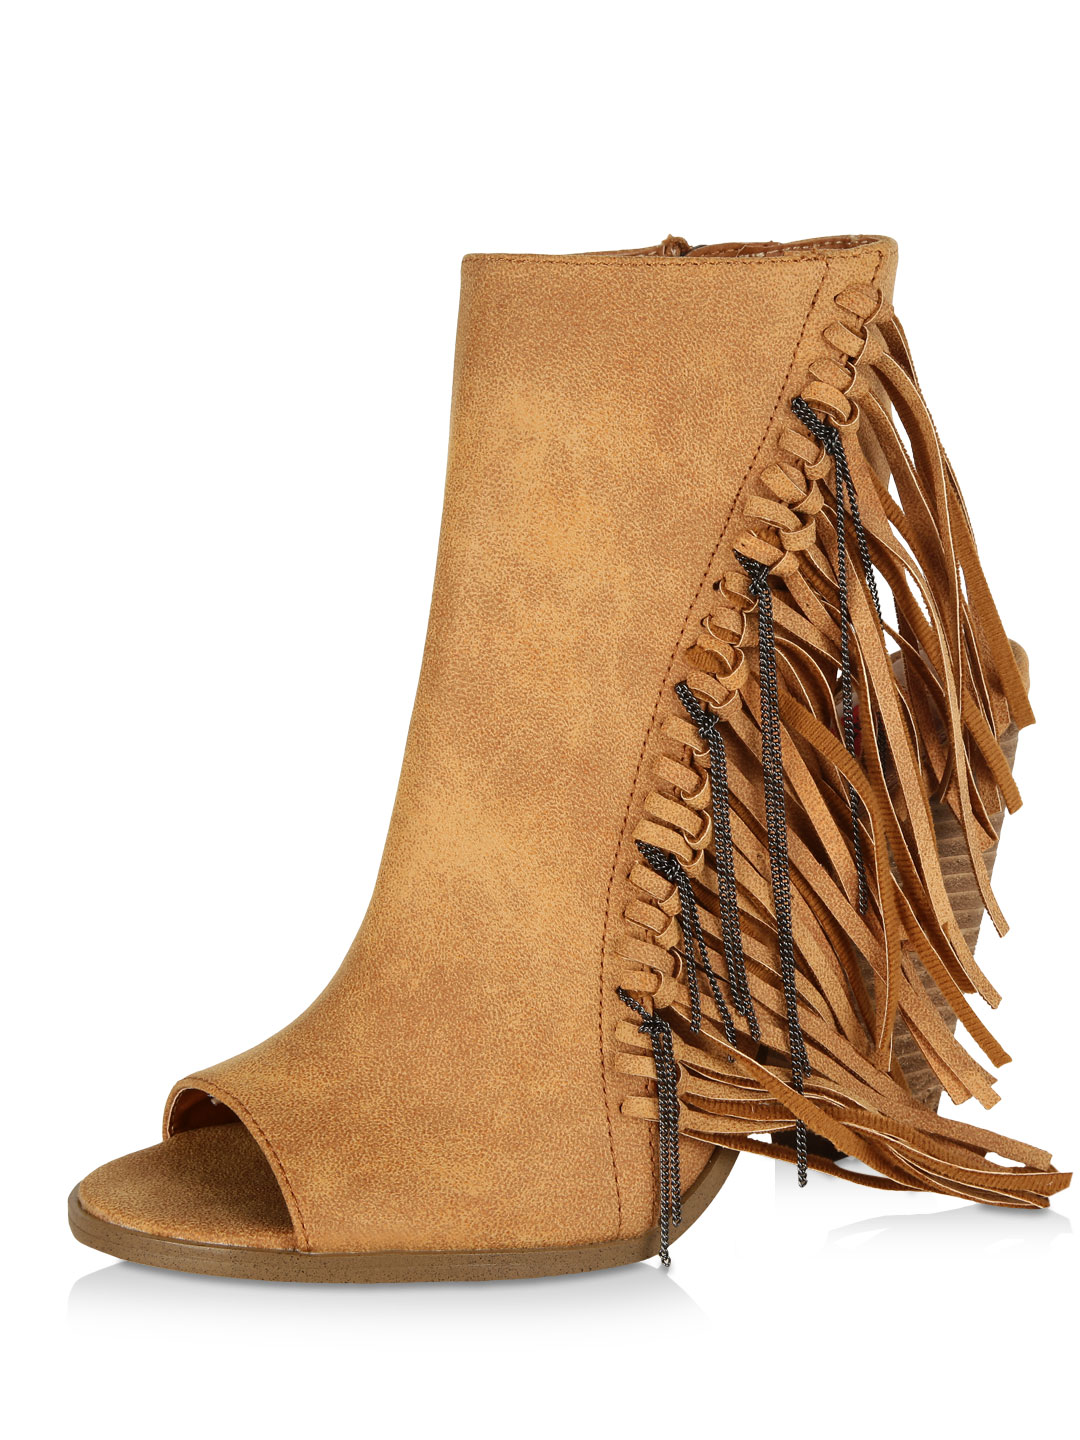 London Rebel Tan Fringed Cut-out Ankle Boots 1